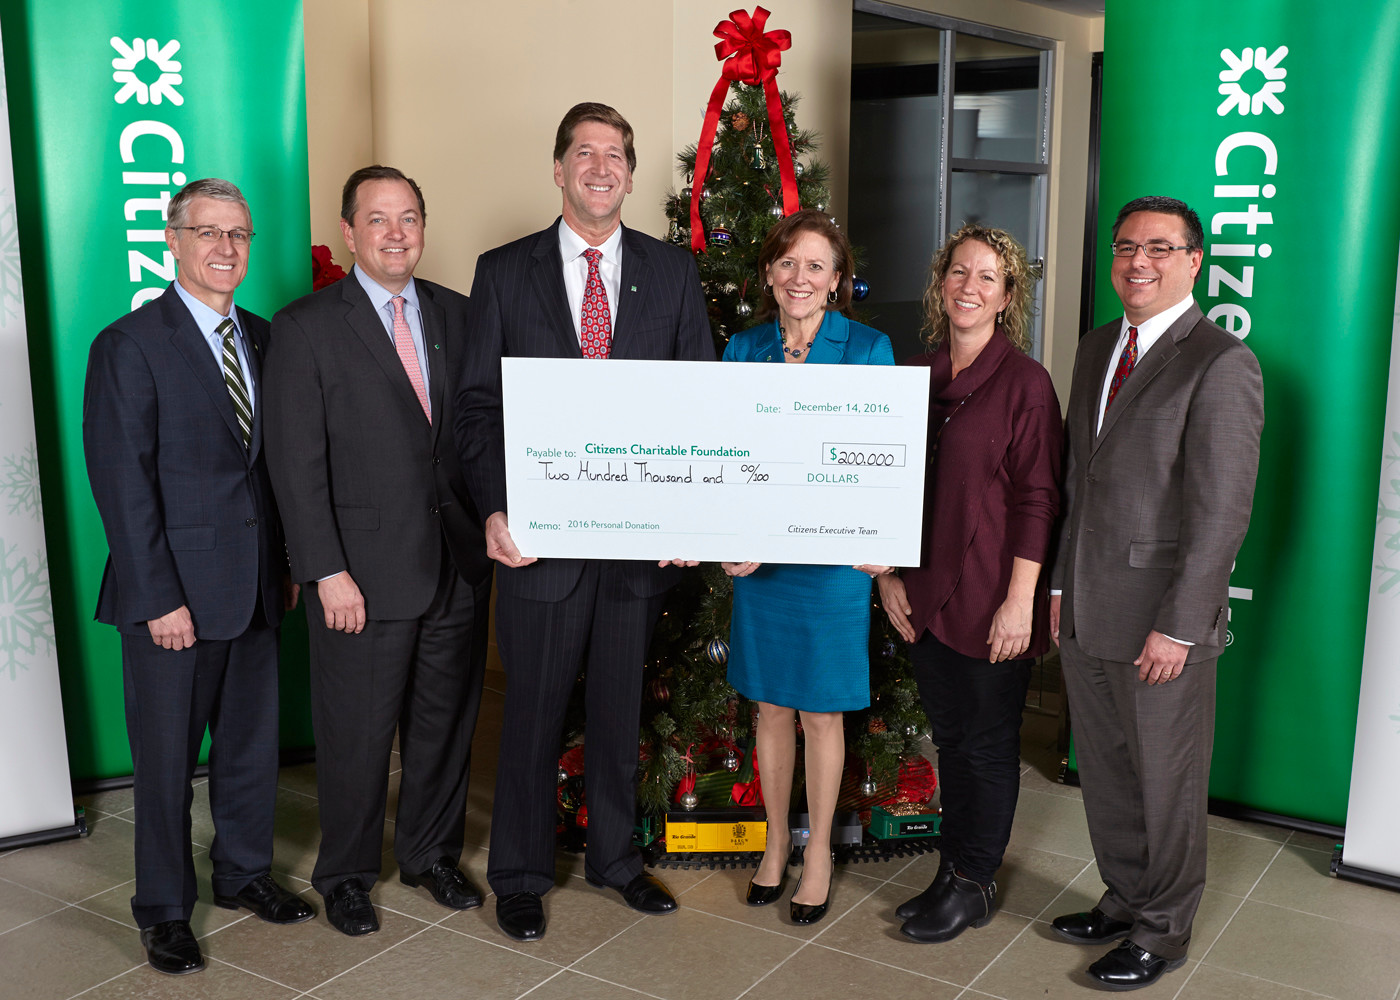 CITIZENS BANK LEADERSHIP celebrates the donation of $200,000 to the Citizens Charitable Foundation in 2016, which was distributed to nonprofits in 2017. From left: Citizens Bank officials Brad Conner, vice chairman, consumer banking, and Don McCree, vice chairman, commercial banking, join Bruce Van Saun, Citizens chairman and CEO; Barbara Cottam, chair of Citizens Charitable Foundation; Sasha Purpura of Food for Free; and David Caprio of Children's Friend and Service. / COURTESY CITIZENS BANK